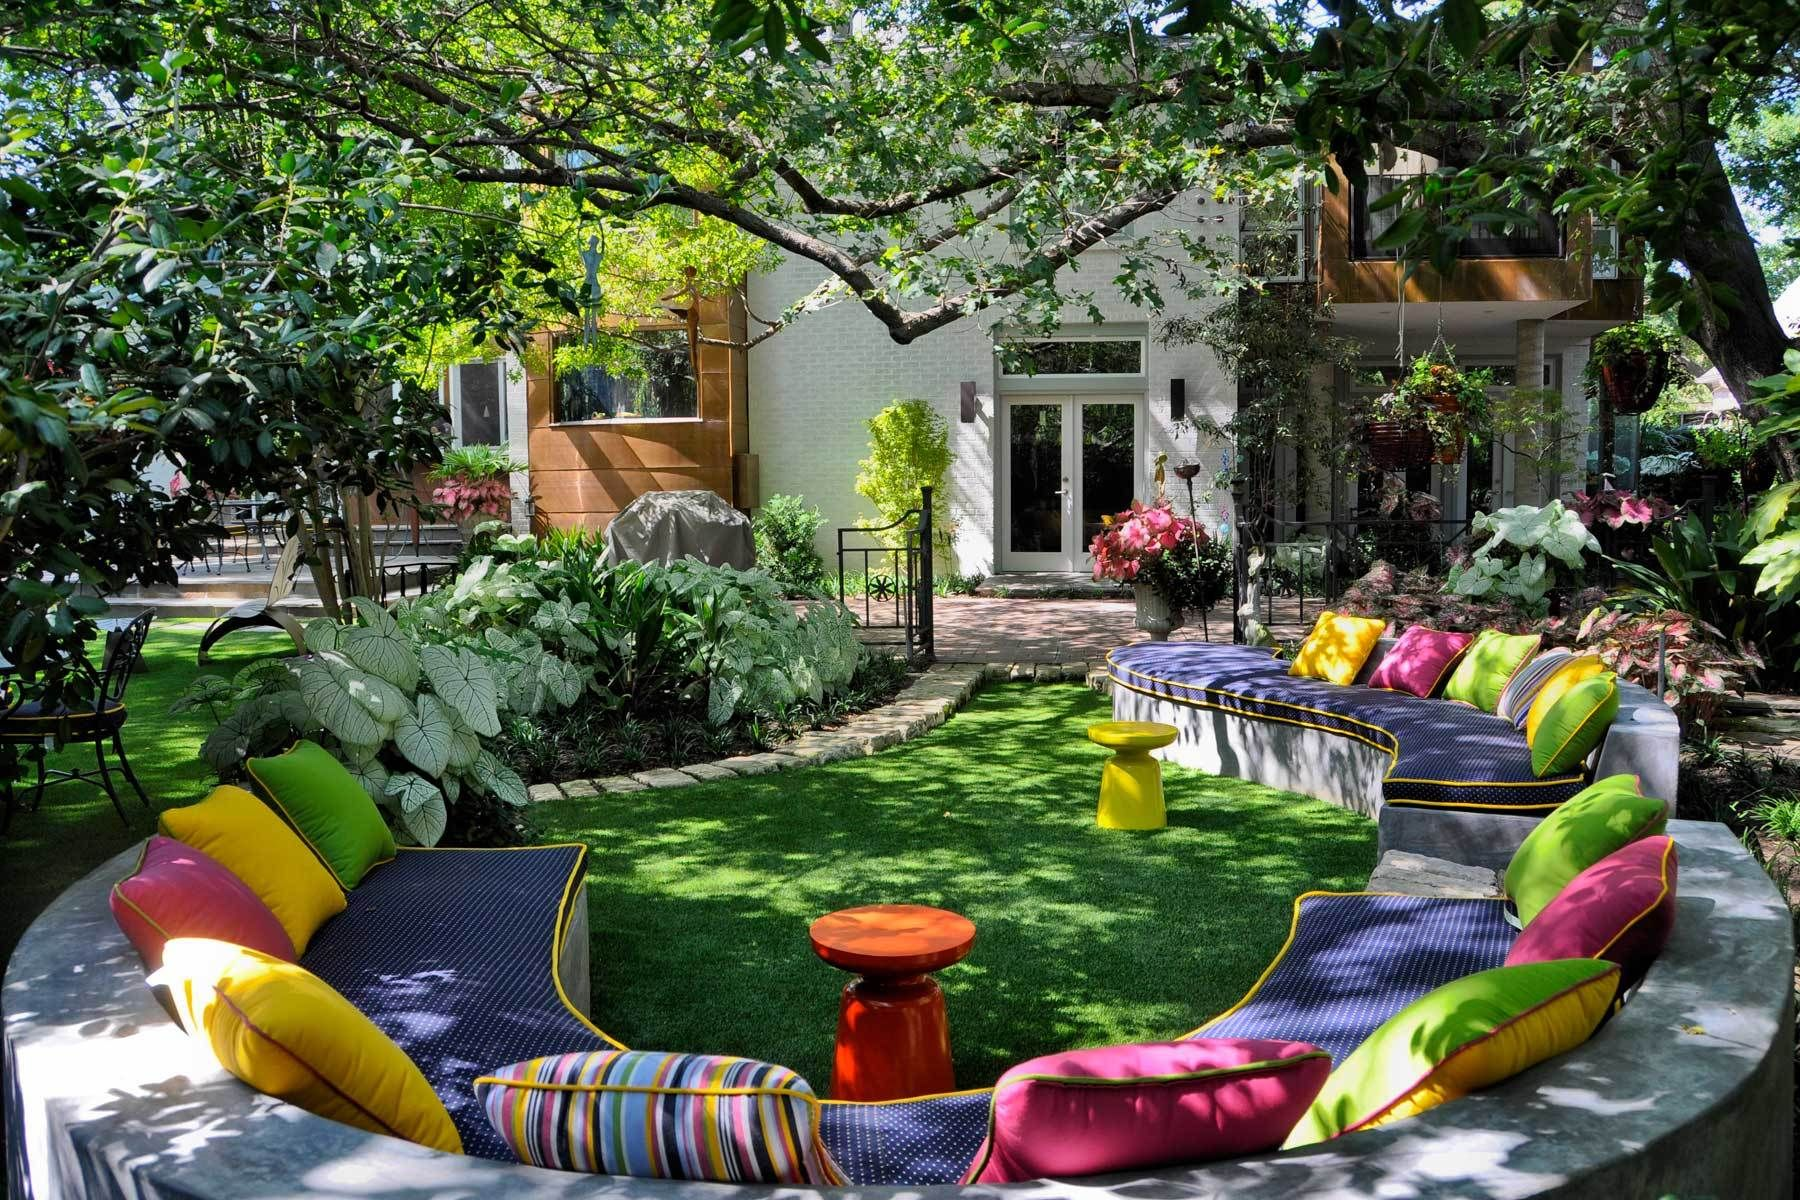 Home and Garden Landscape designs and ideas for your beautiful home | Visit http://www.suomenlvis.fi/